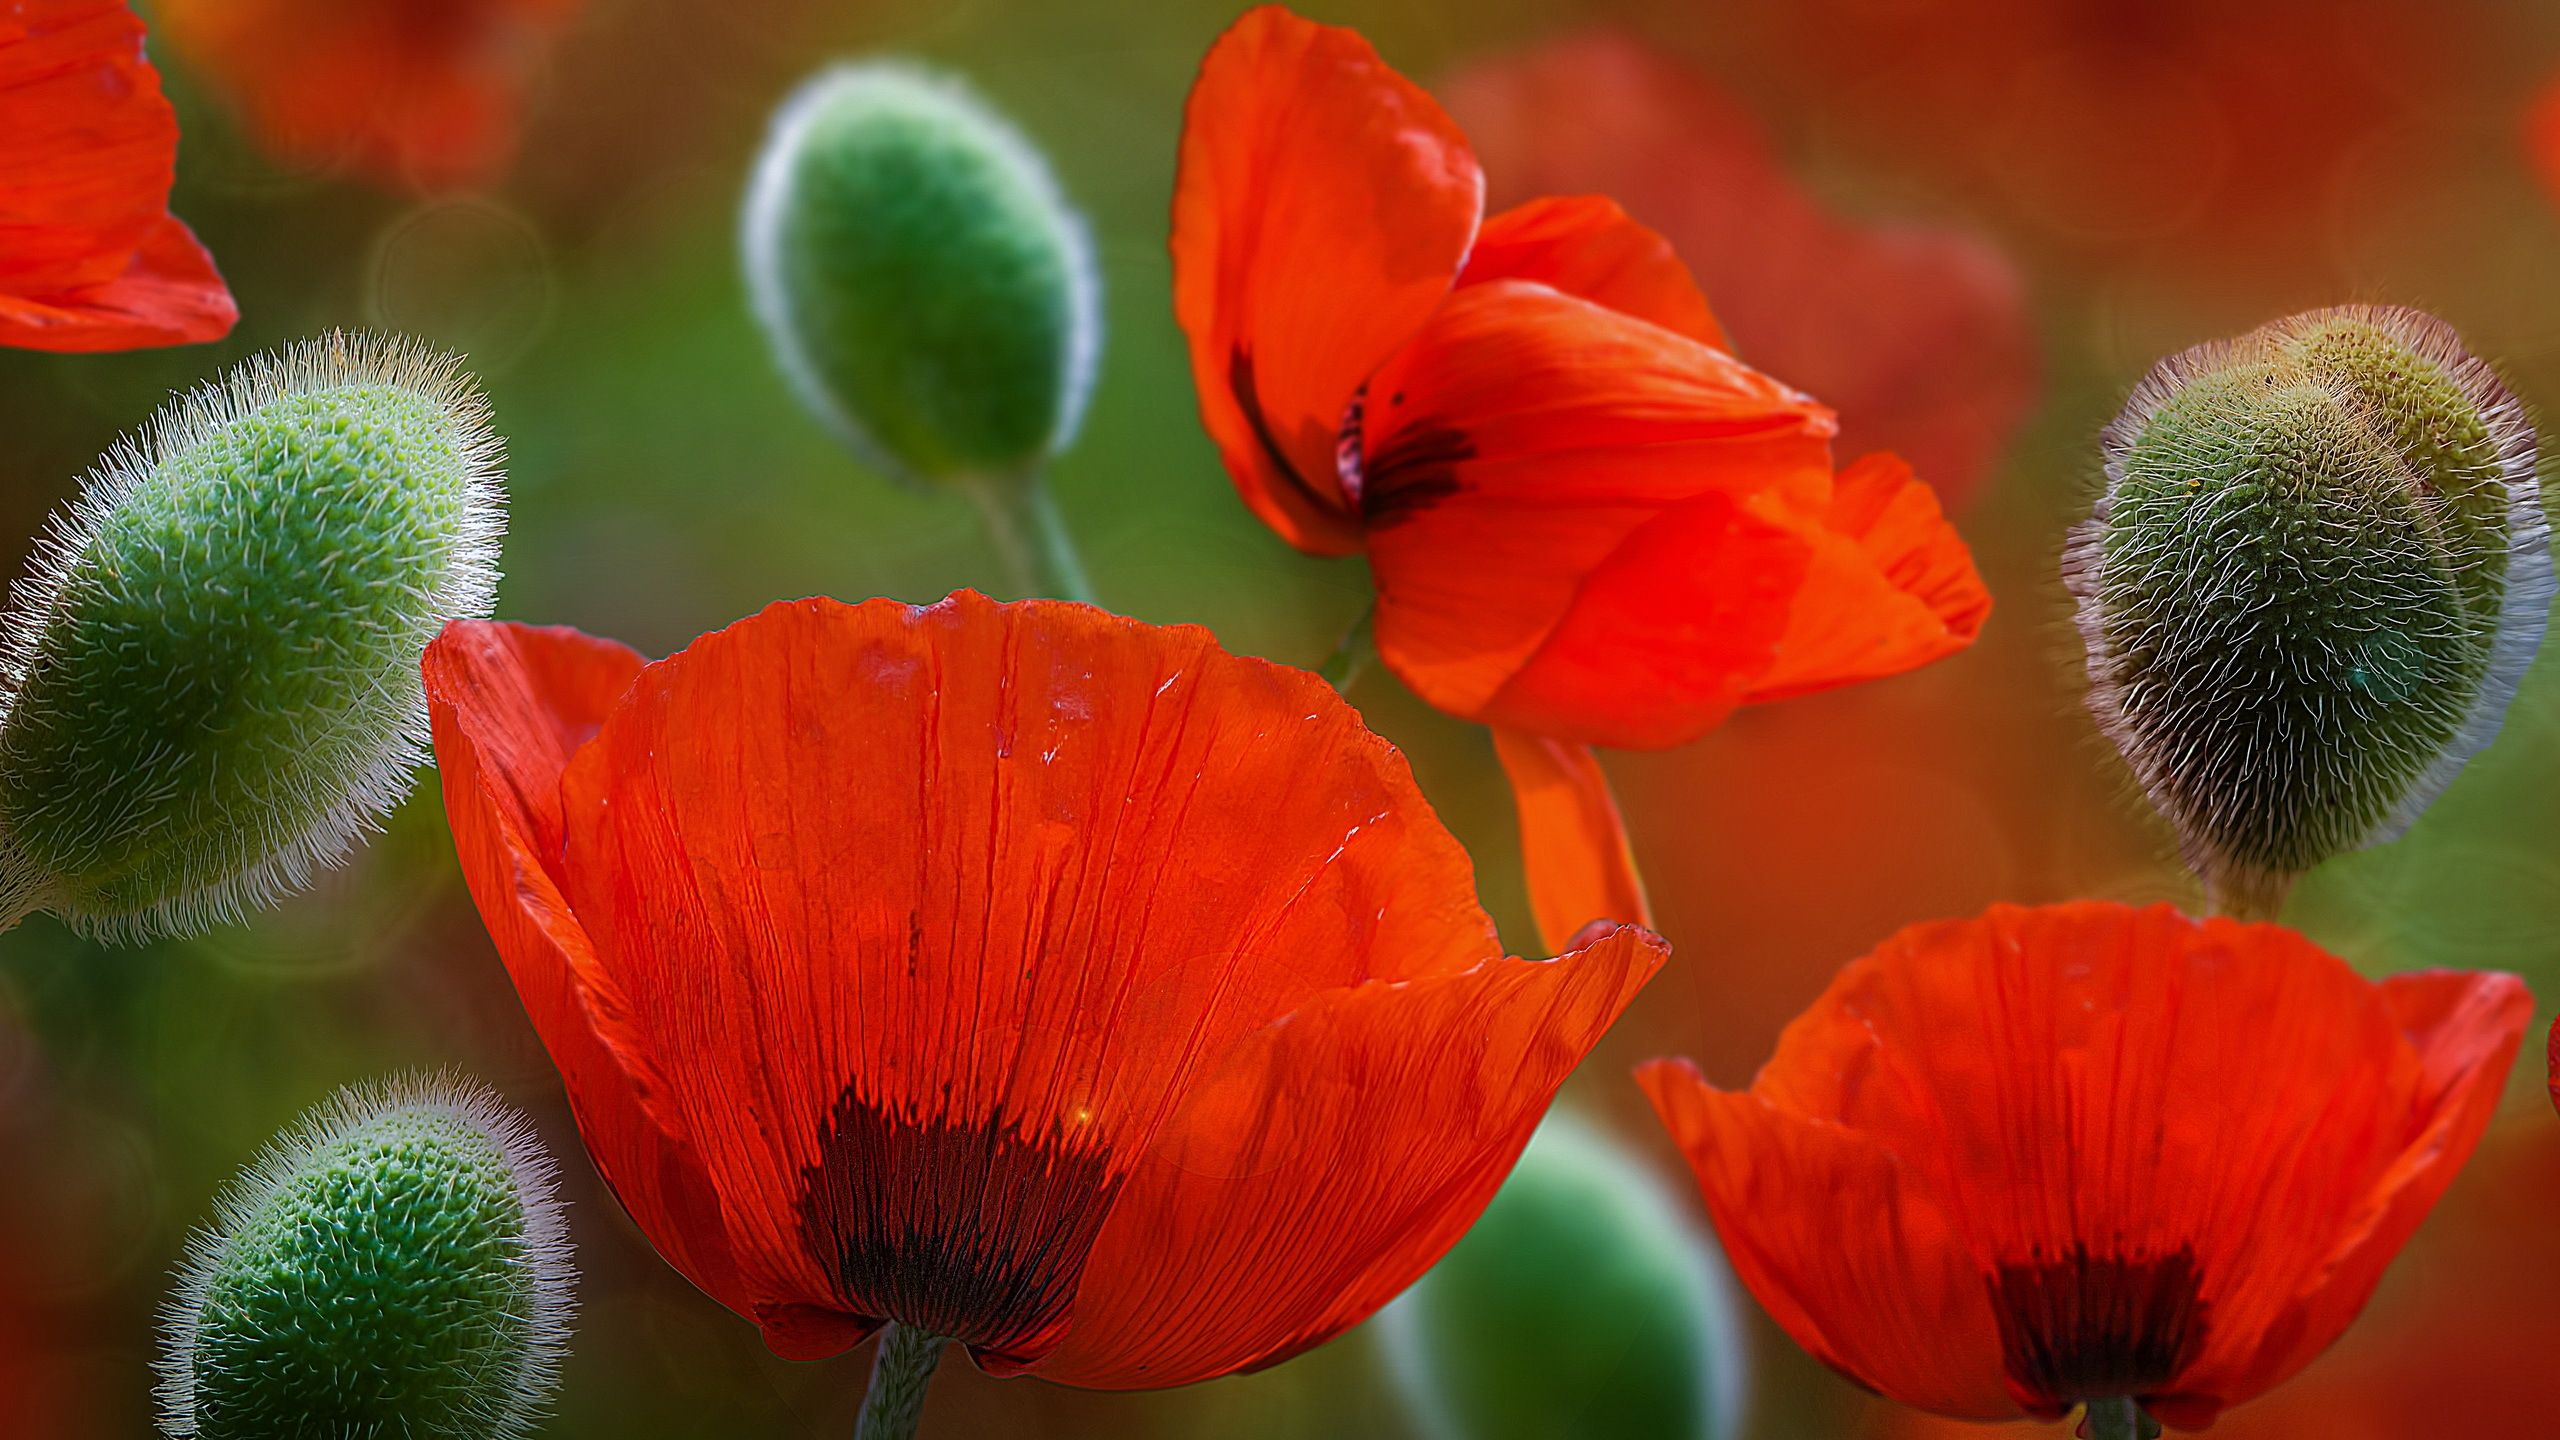 Beautiful Poppy Flowers wallpaper